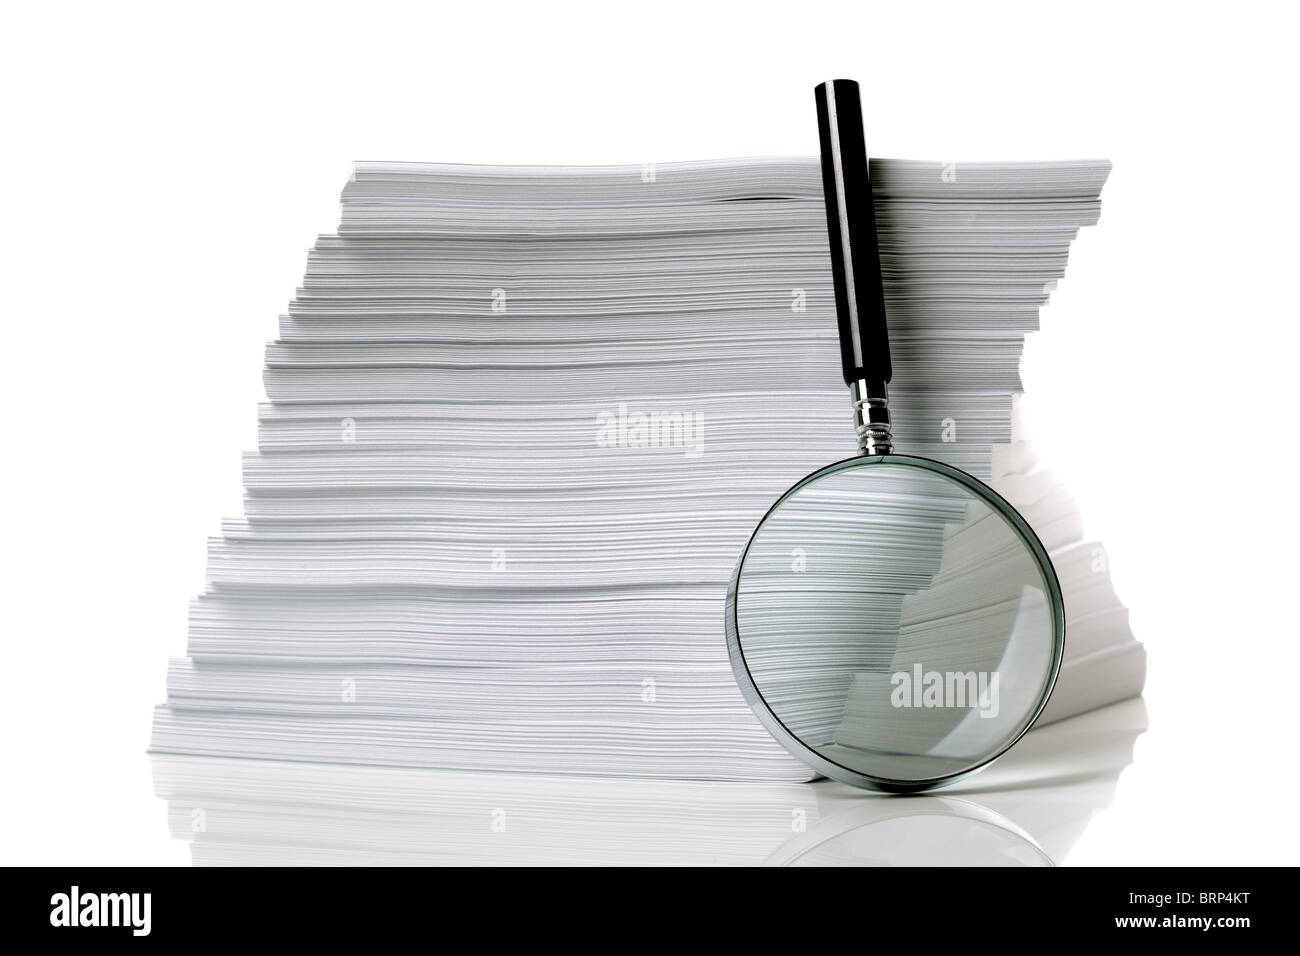 Searching for document - Stock Image